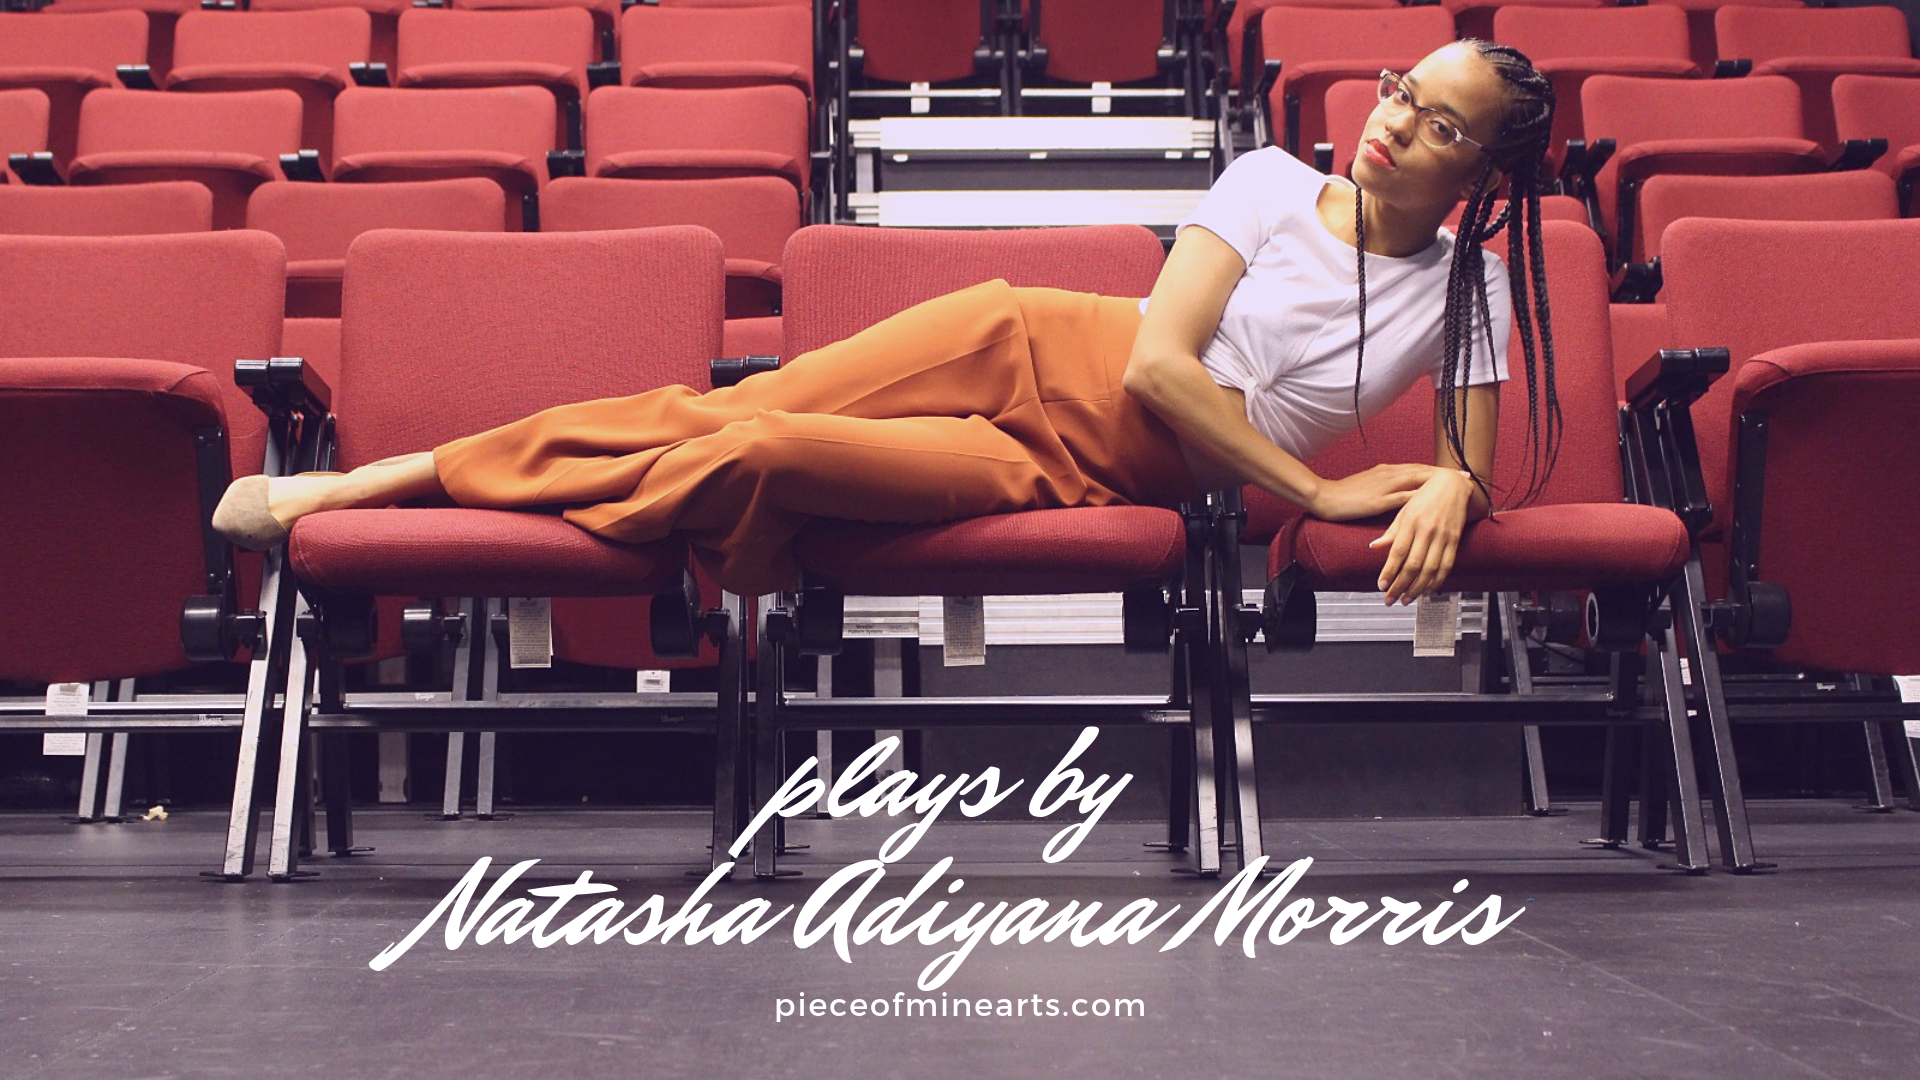 Plays by Natasha Adiyana Morris